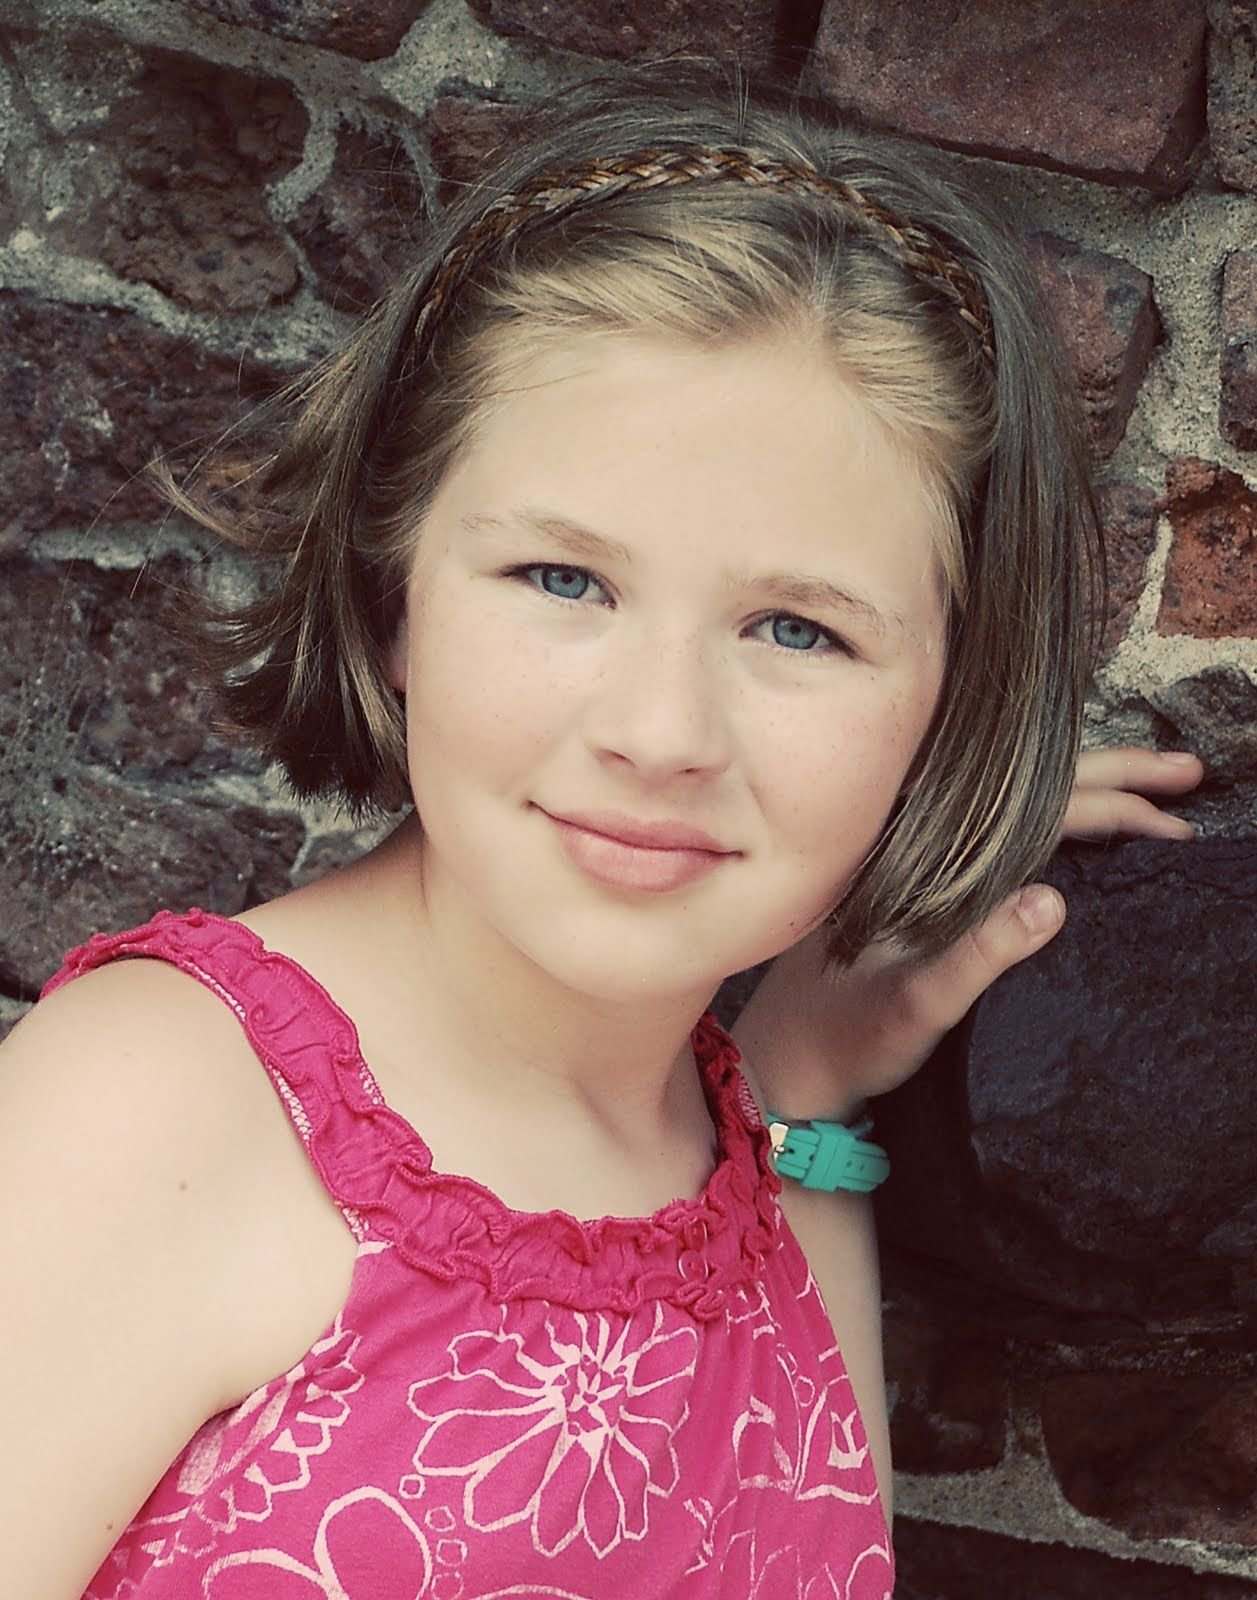 The Best Haircuts For 8 Year Old Girls My 10 Year Old For Pictures